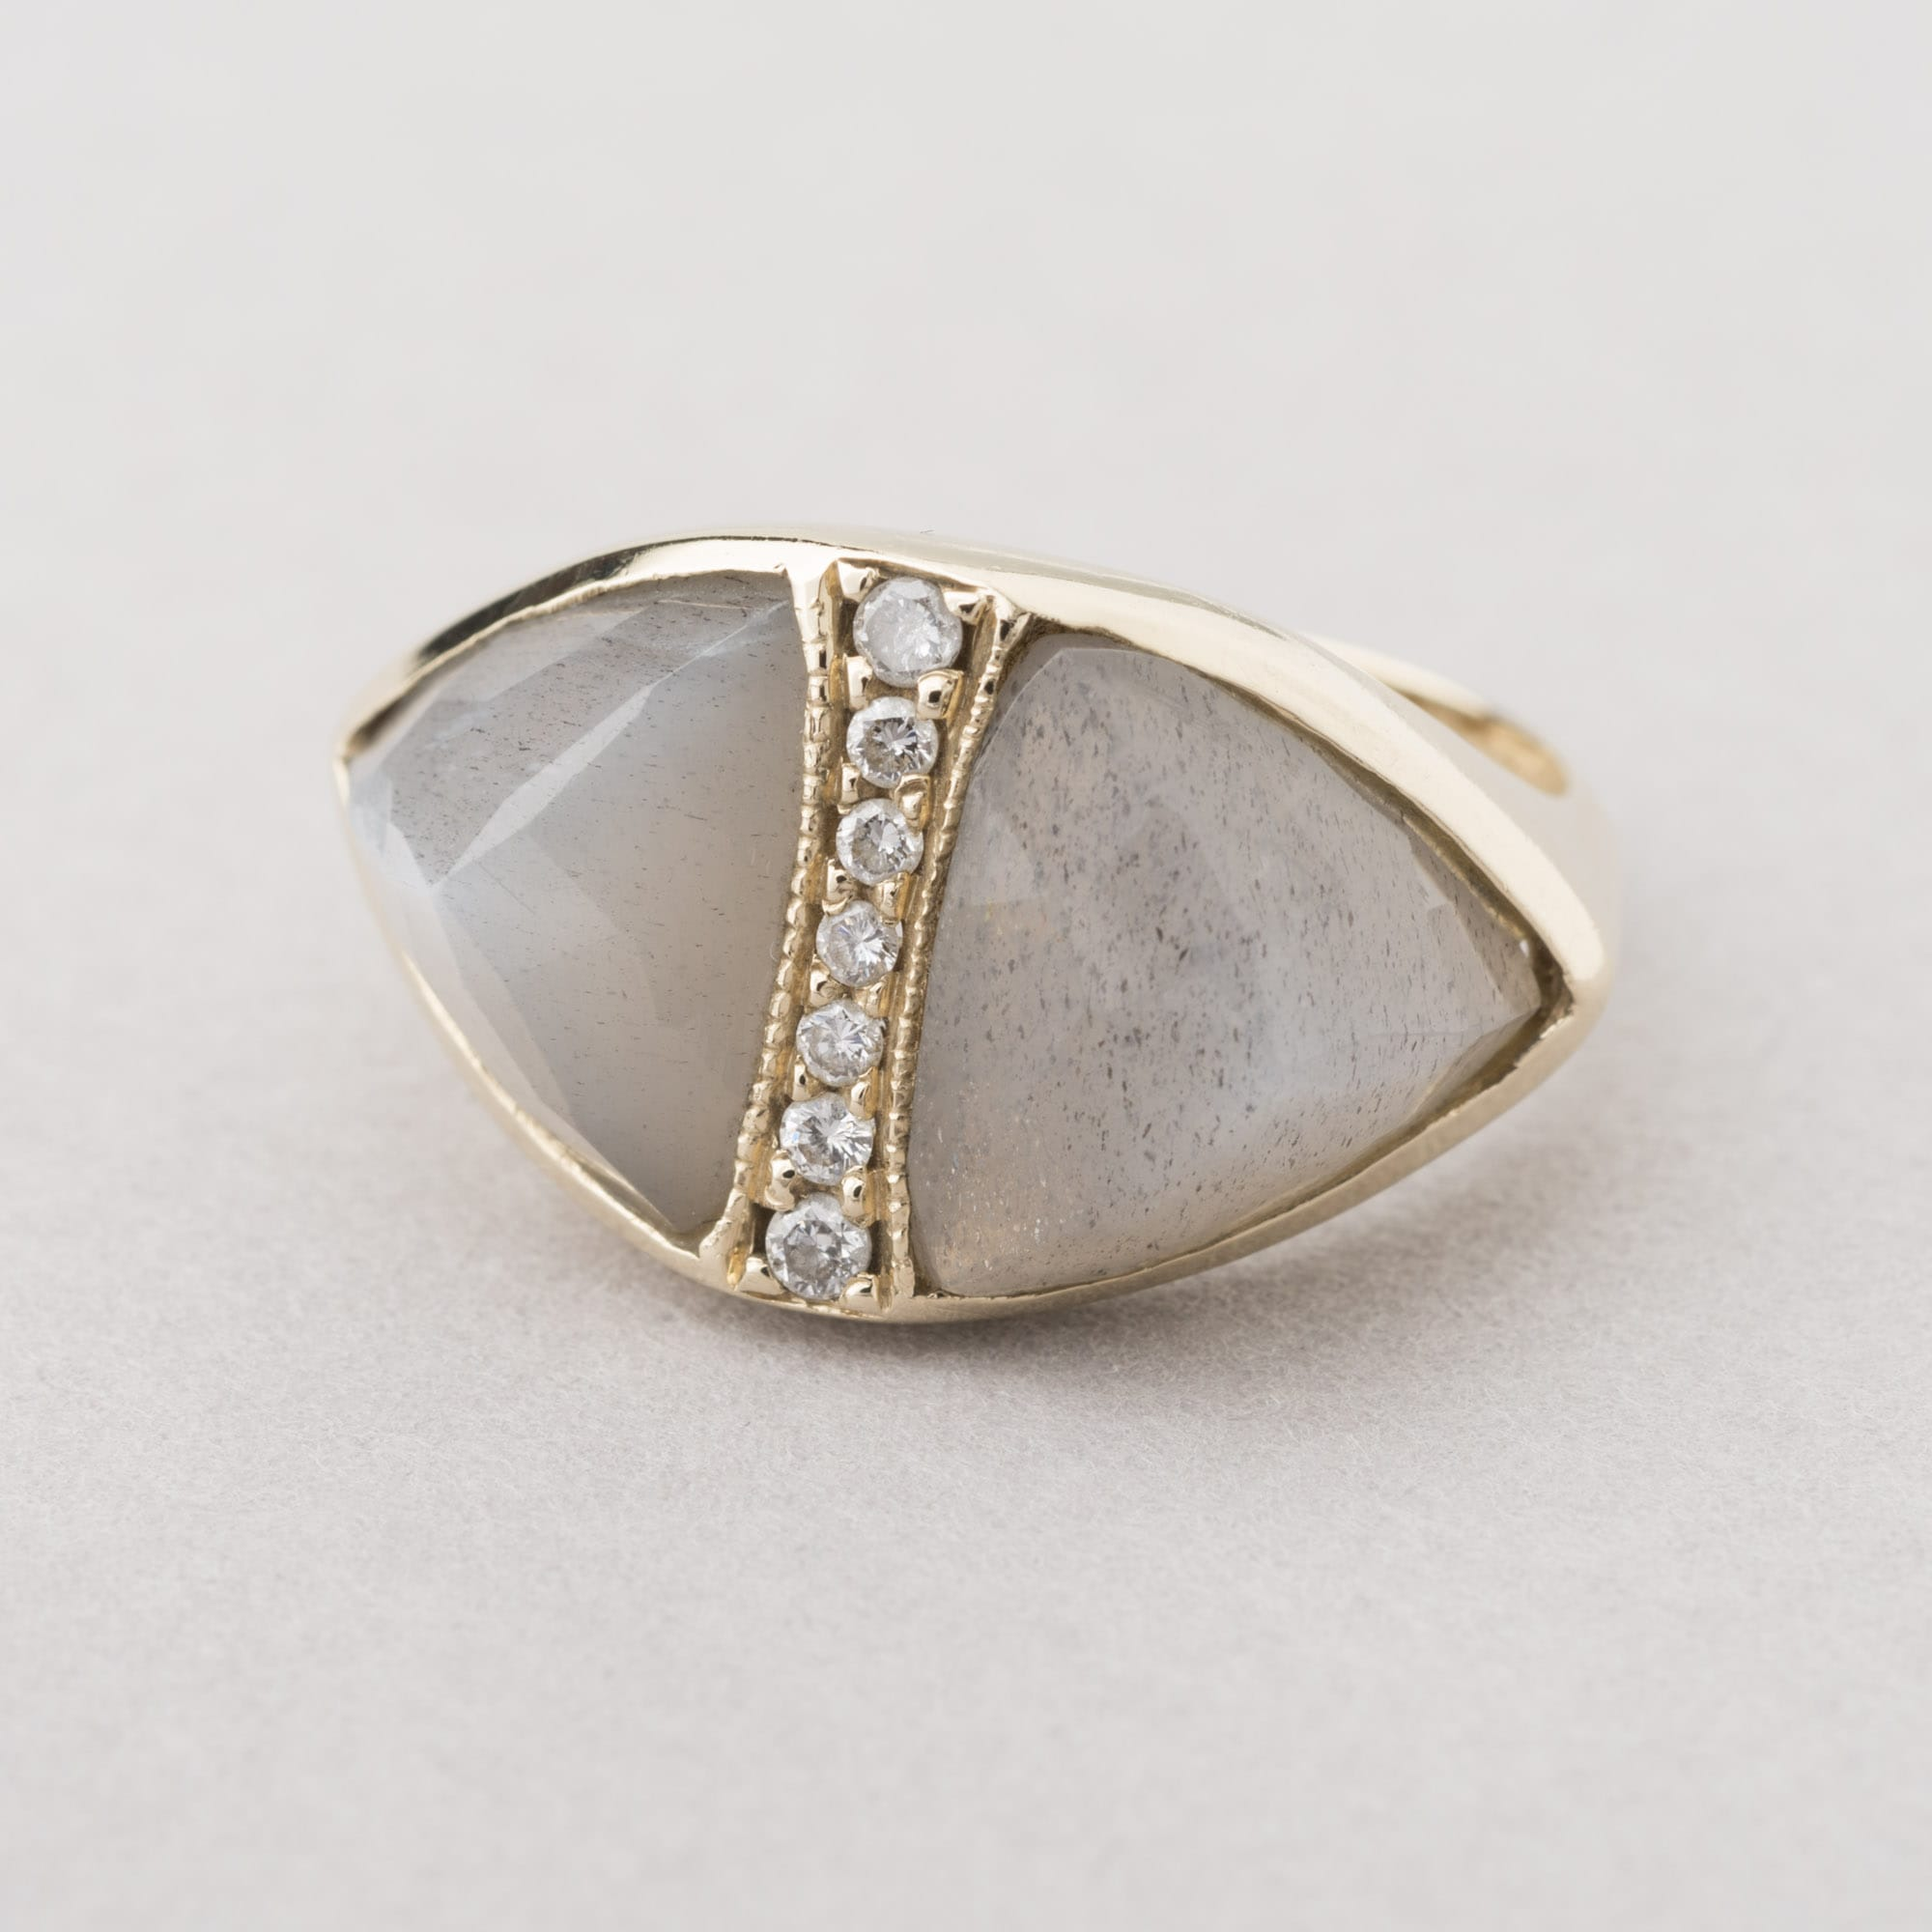 rings lunar crystal of aqua moonstone diamond cut sterling img a kind in silver products ring